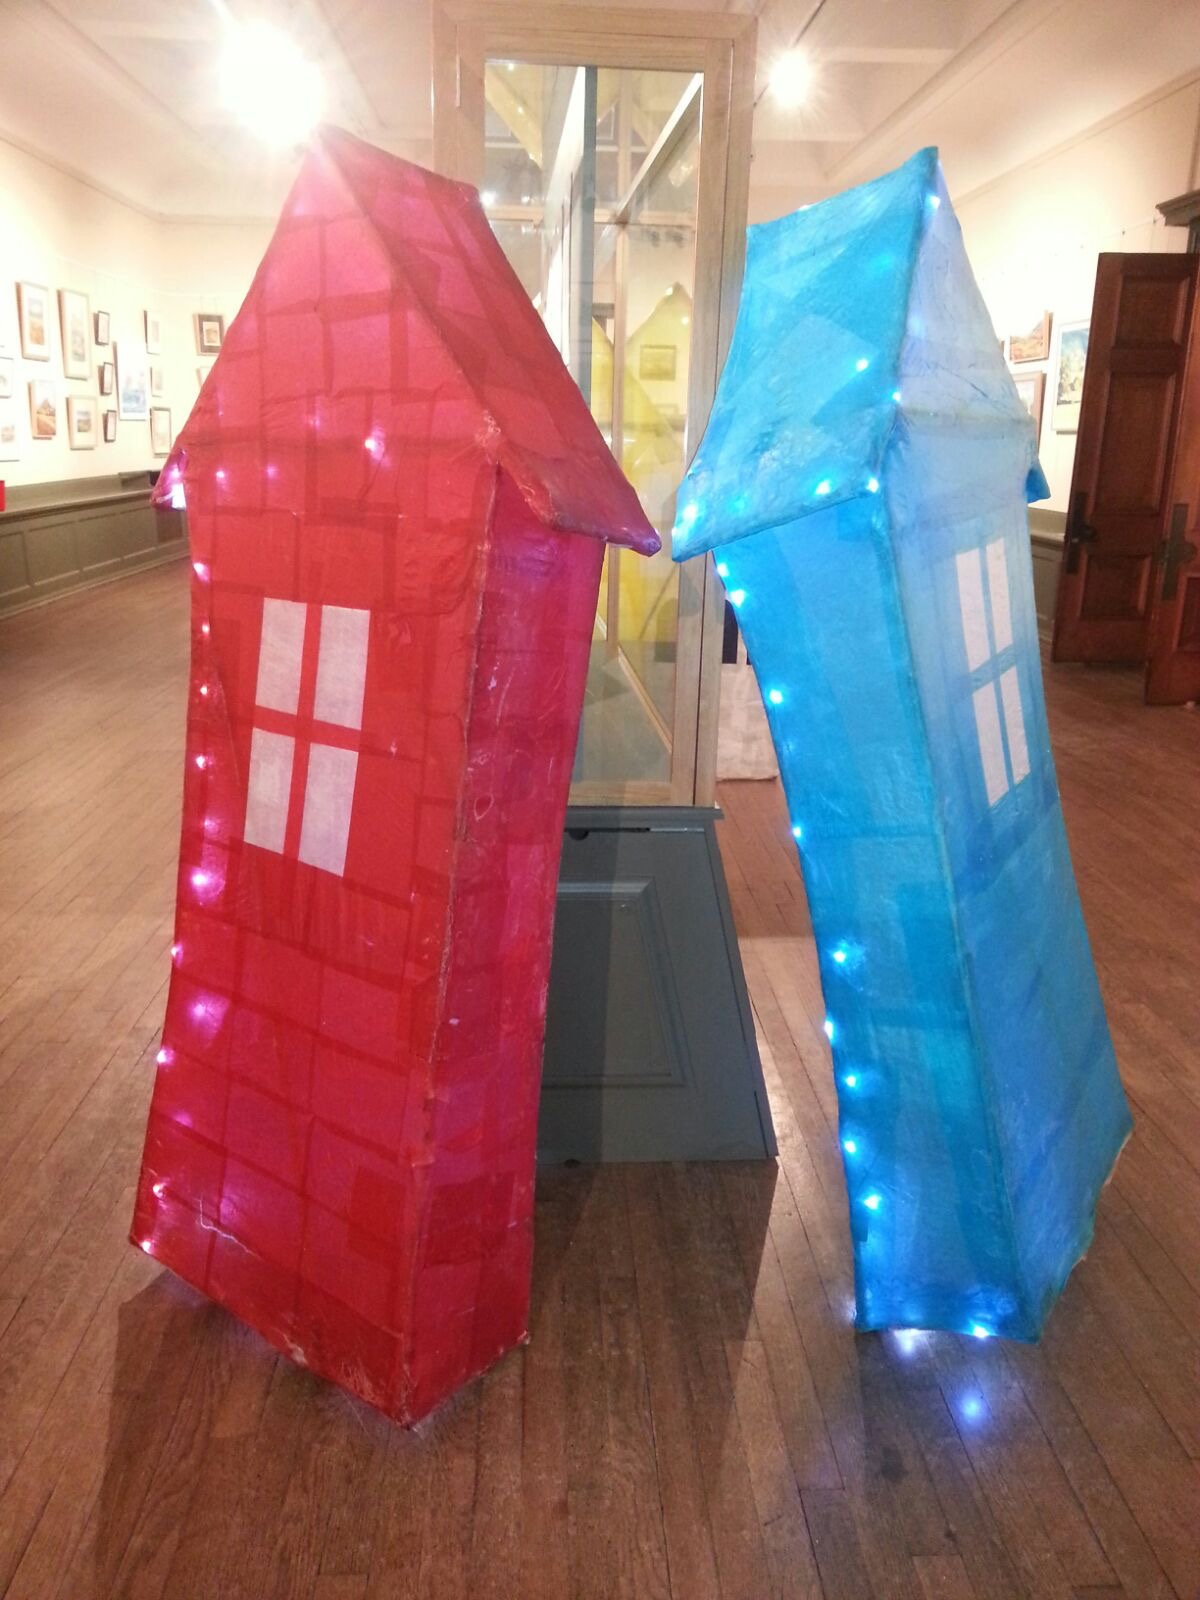 Stakesby Community Primary School made two beach hut lanterns in red and yellow, and a further blue beach hut was created by West Cliff Primary School along with the magnificent set of Whale bones